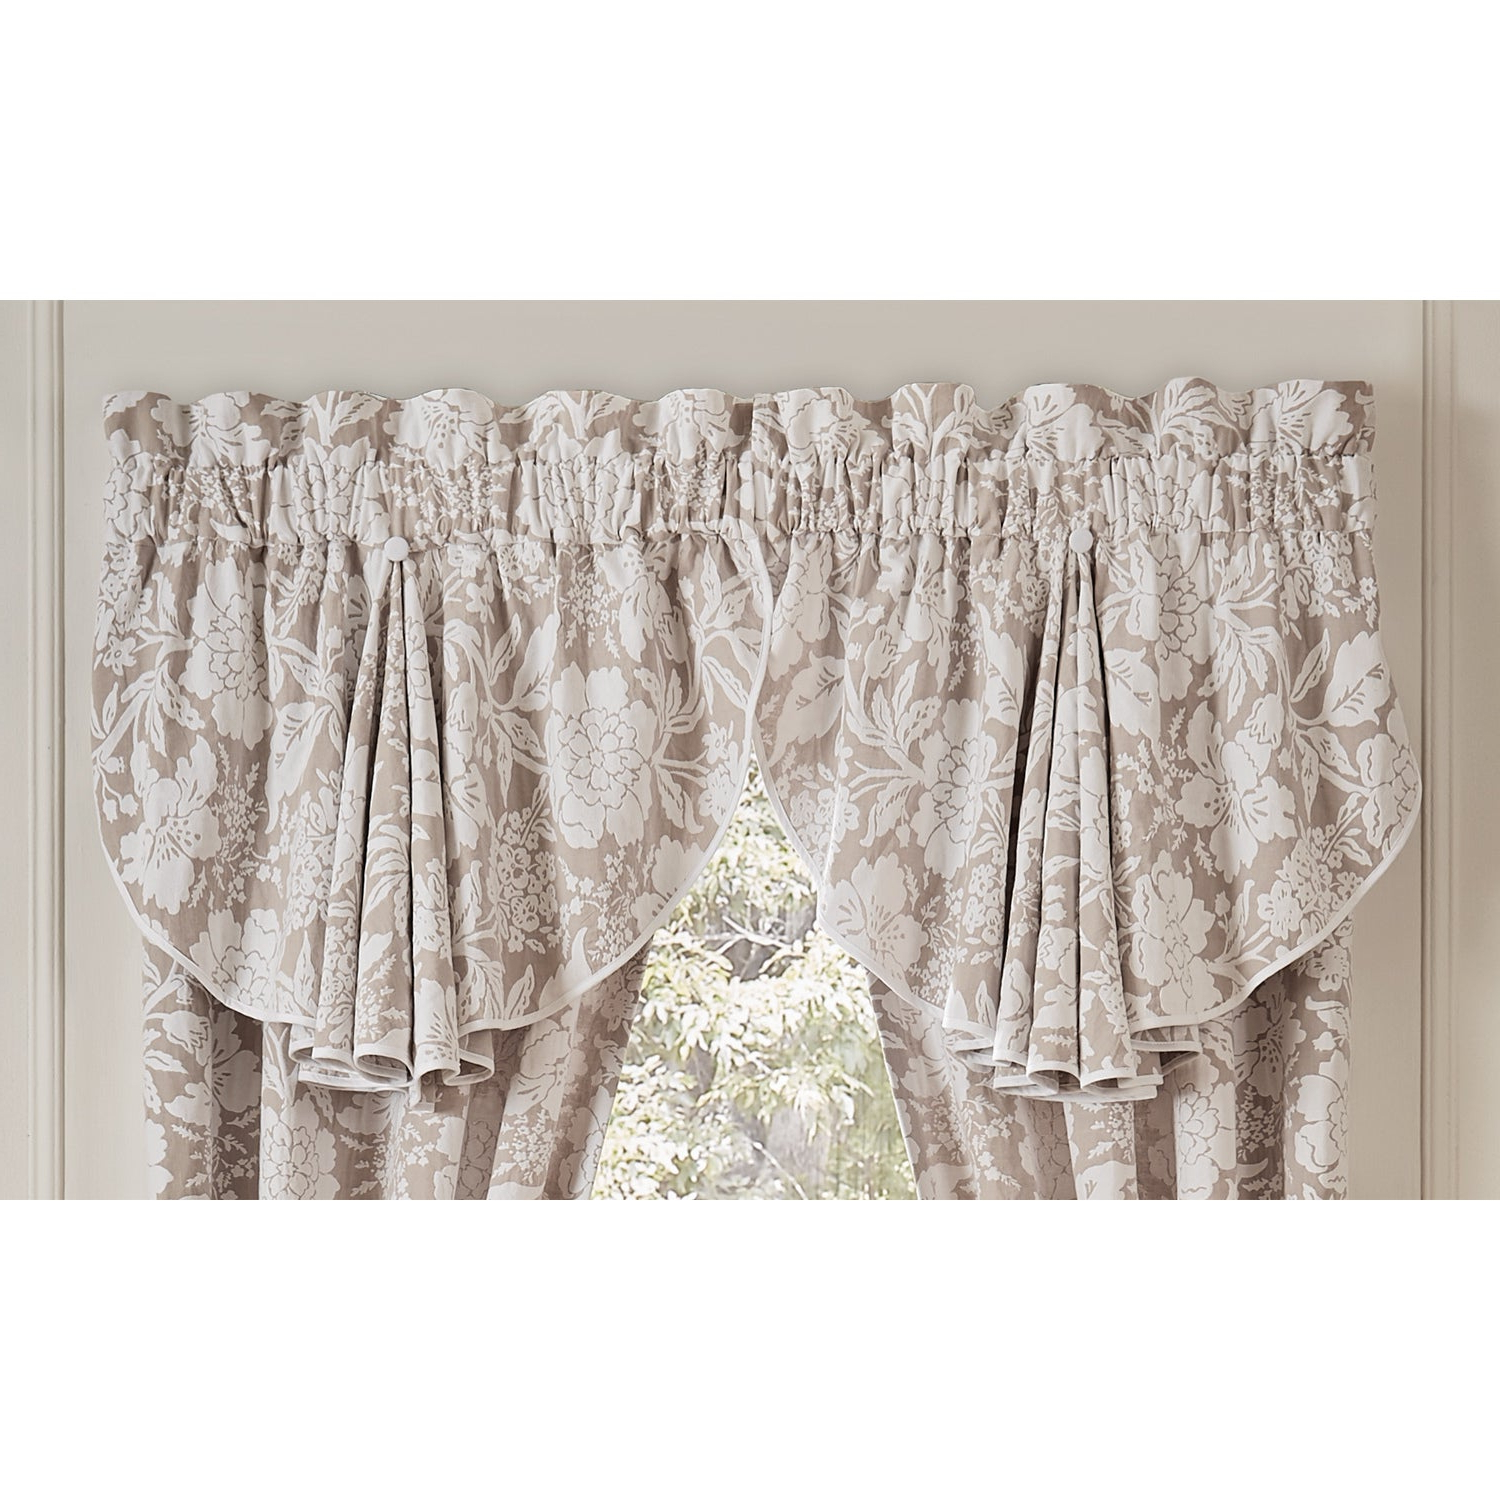 Circle Curtain Valances Within Most Current Nellie 42X24 Circle Curtain Valance – 42 X  (View 7 of 20)